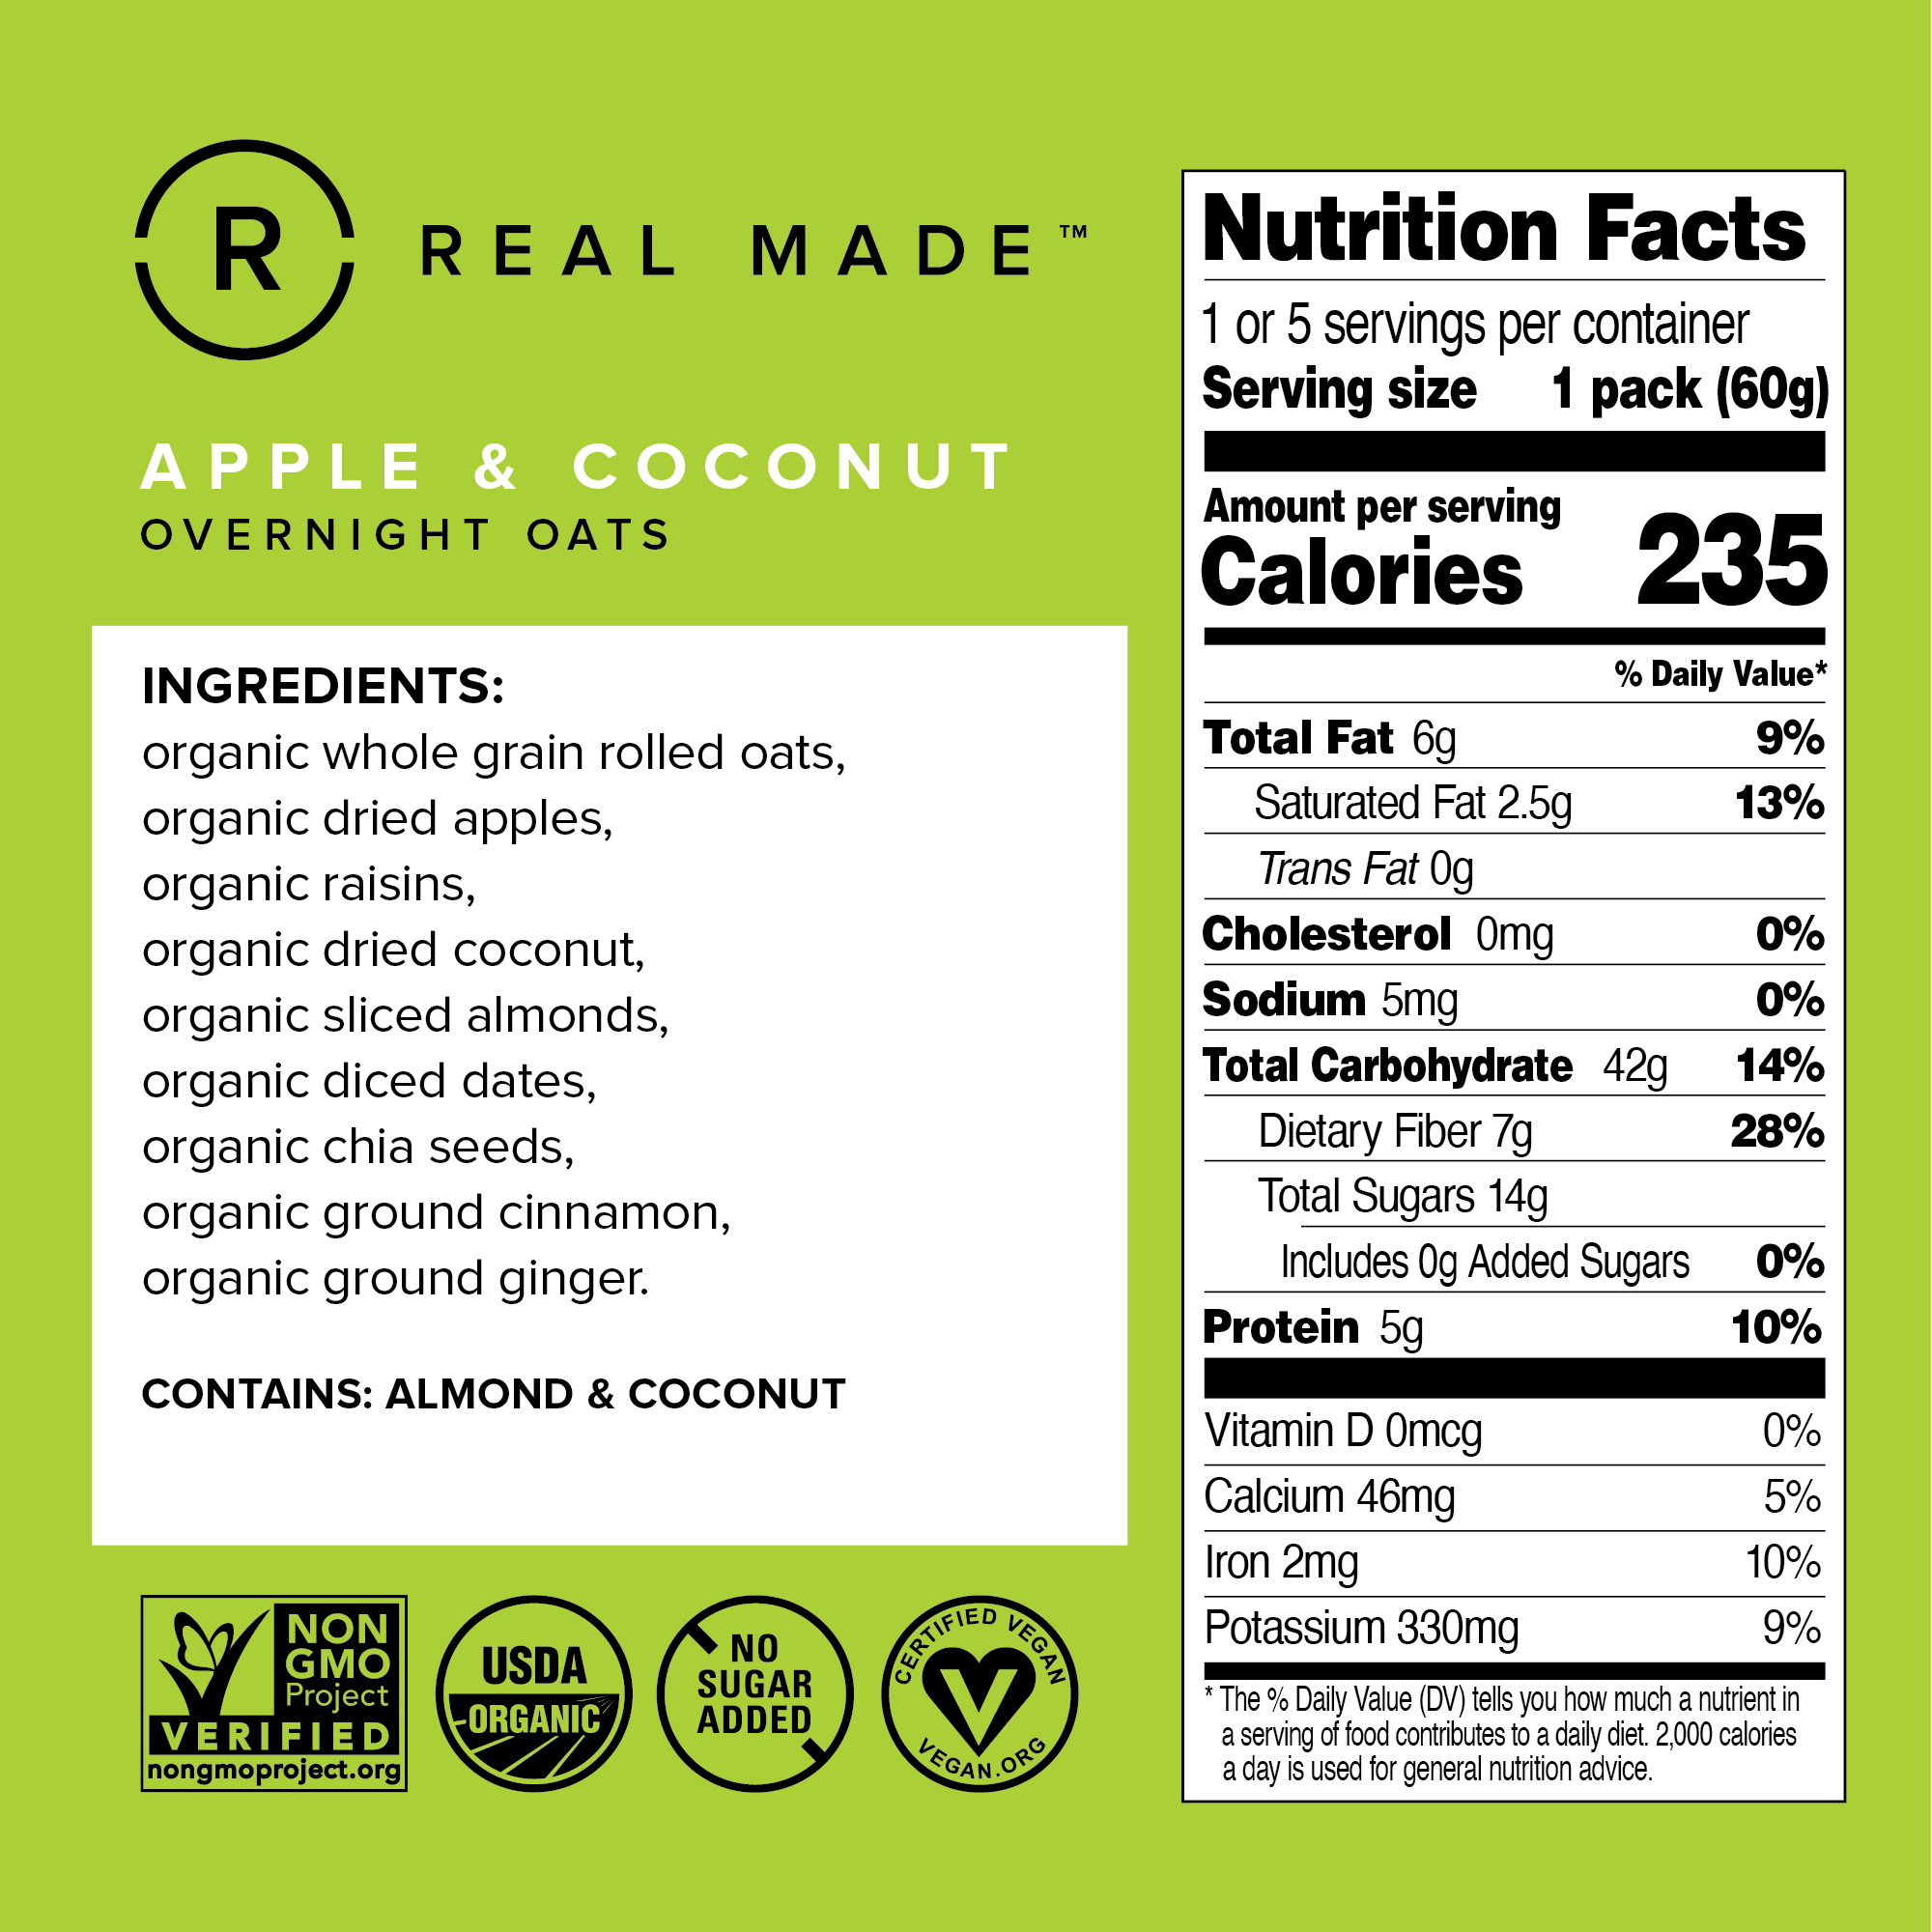 Apple & Coconut Nutrition Facts